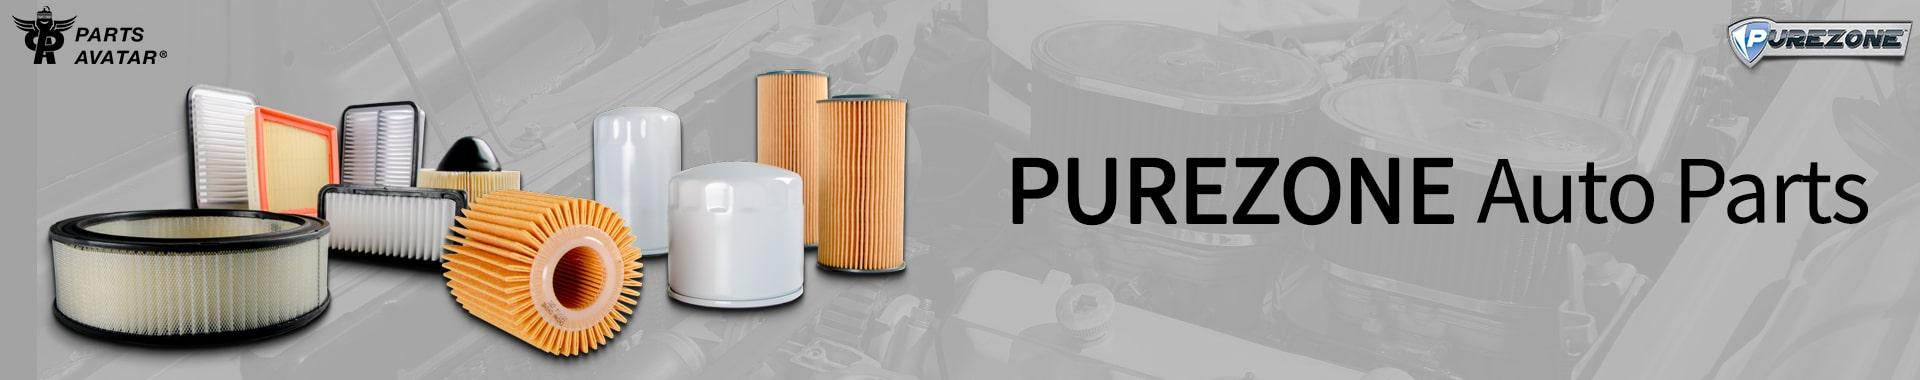 3.6. Purezone Air Filters